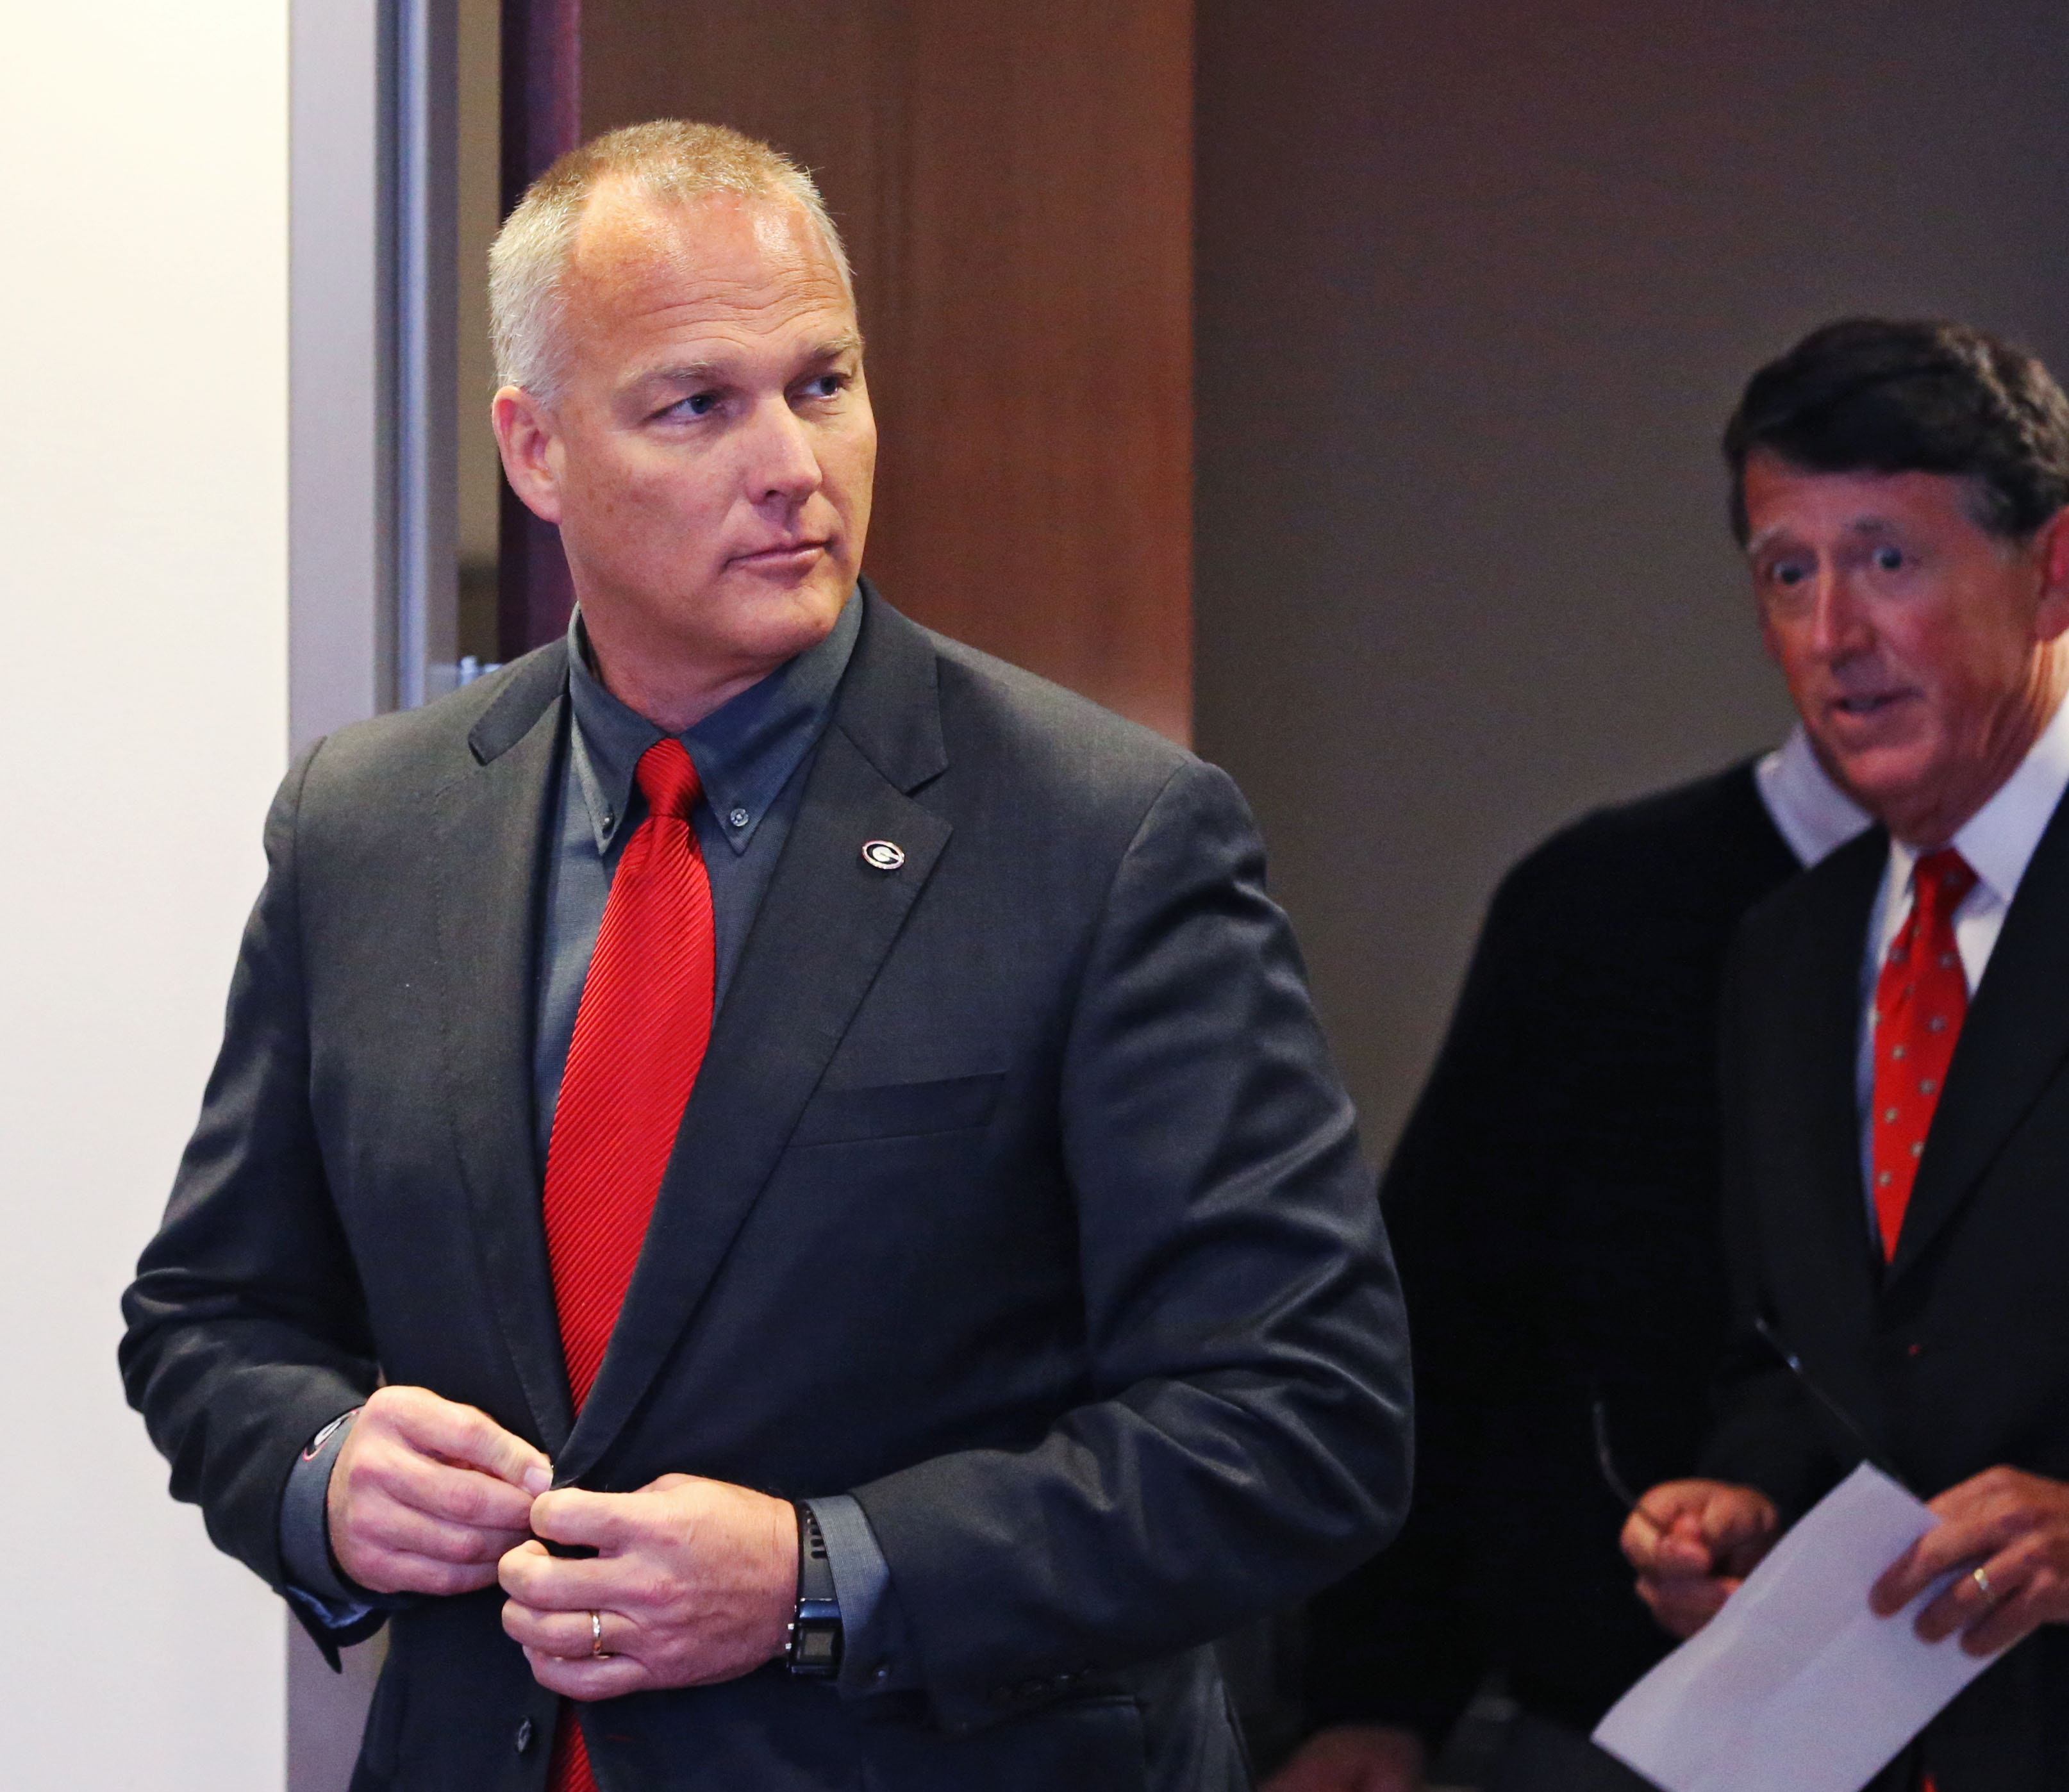 University of Georgia head football coach Mark Richt enters a press conference Monday, Nov. 30, 2015, ahead of athletics director Greg McGarity, in Athens, Ga., at press conference officially marking his dismissal as the Bulldogs' head football coach. Geo